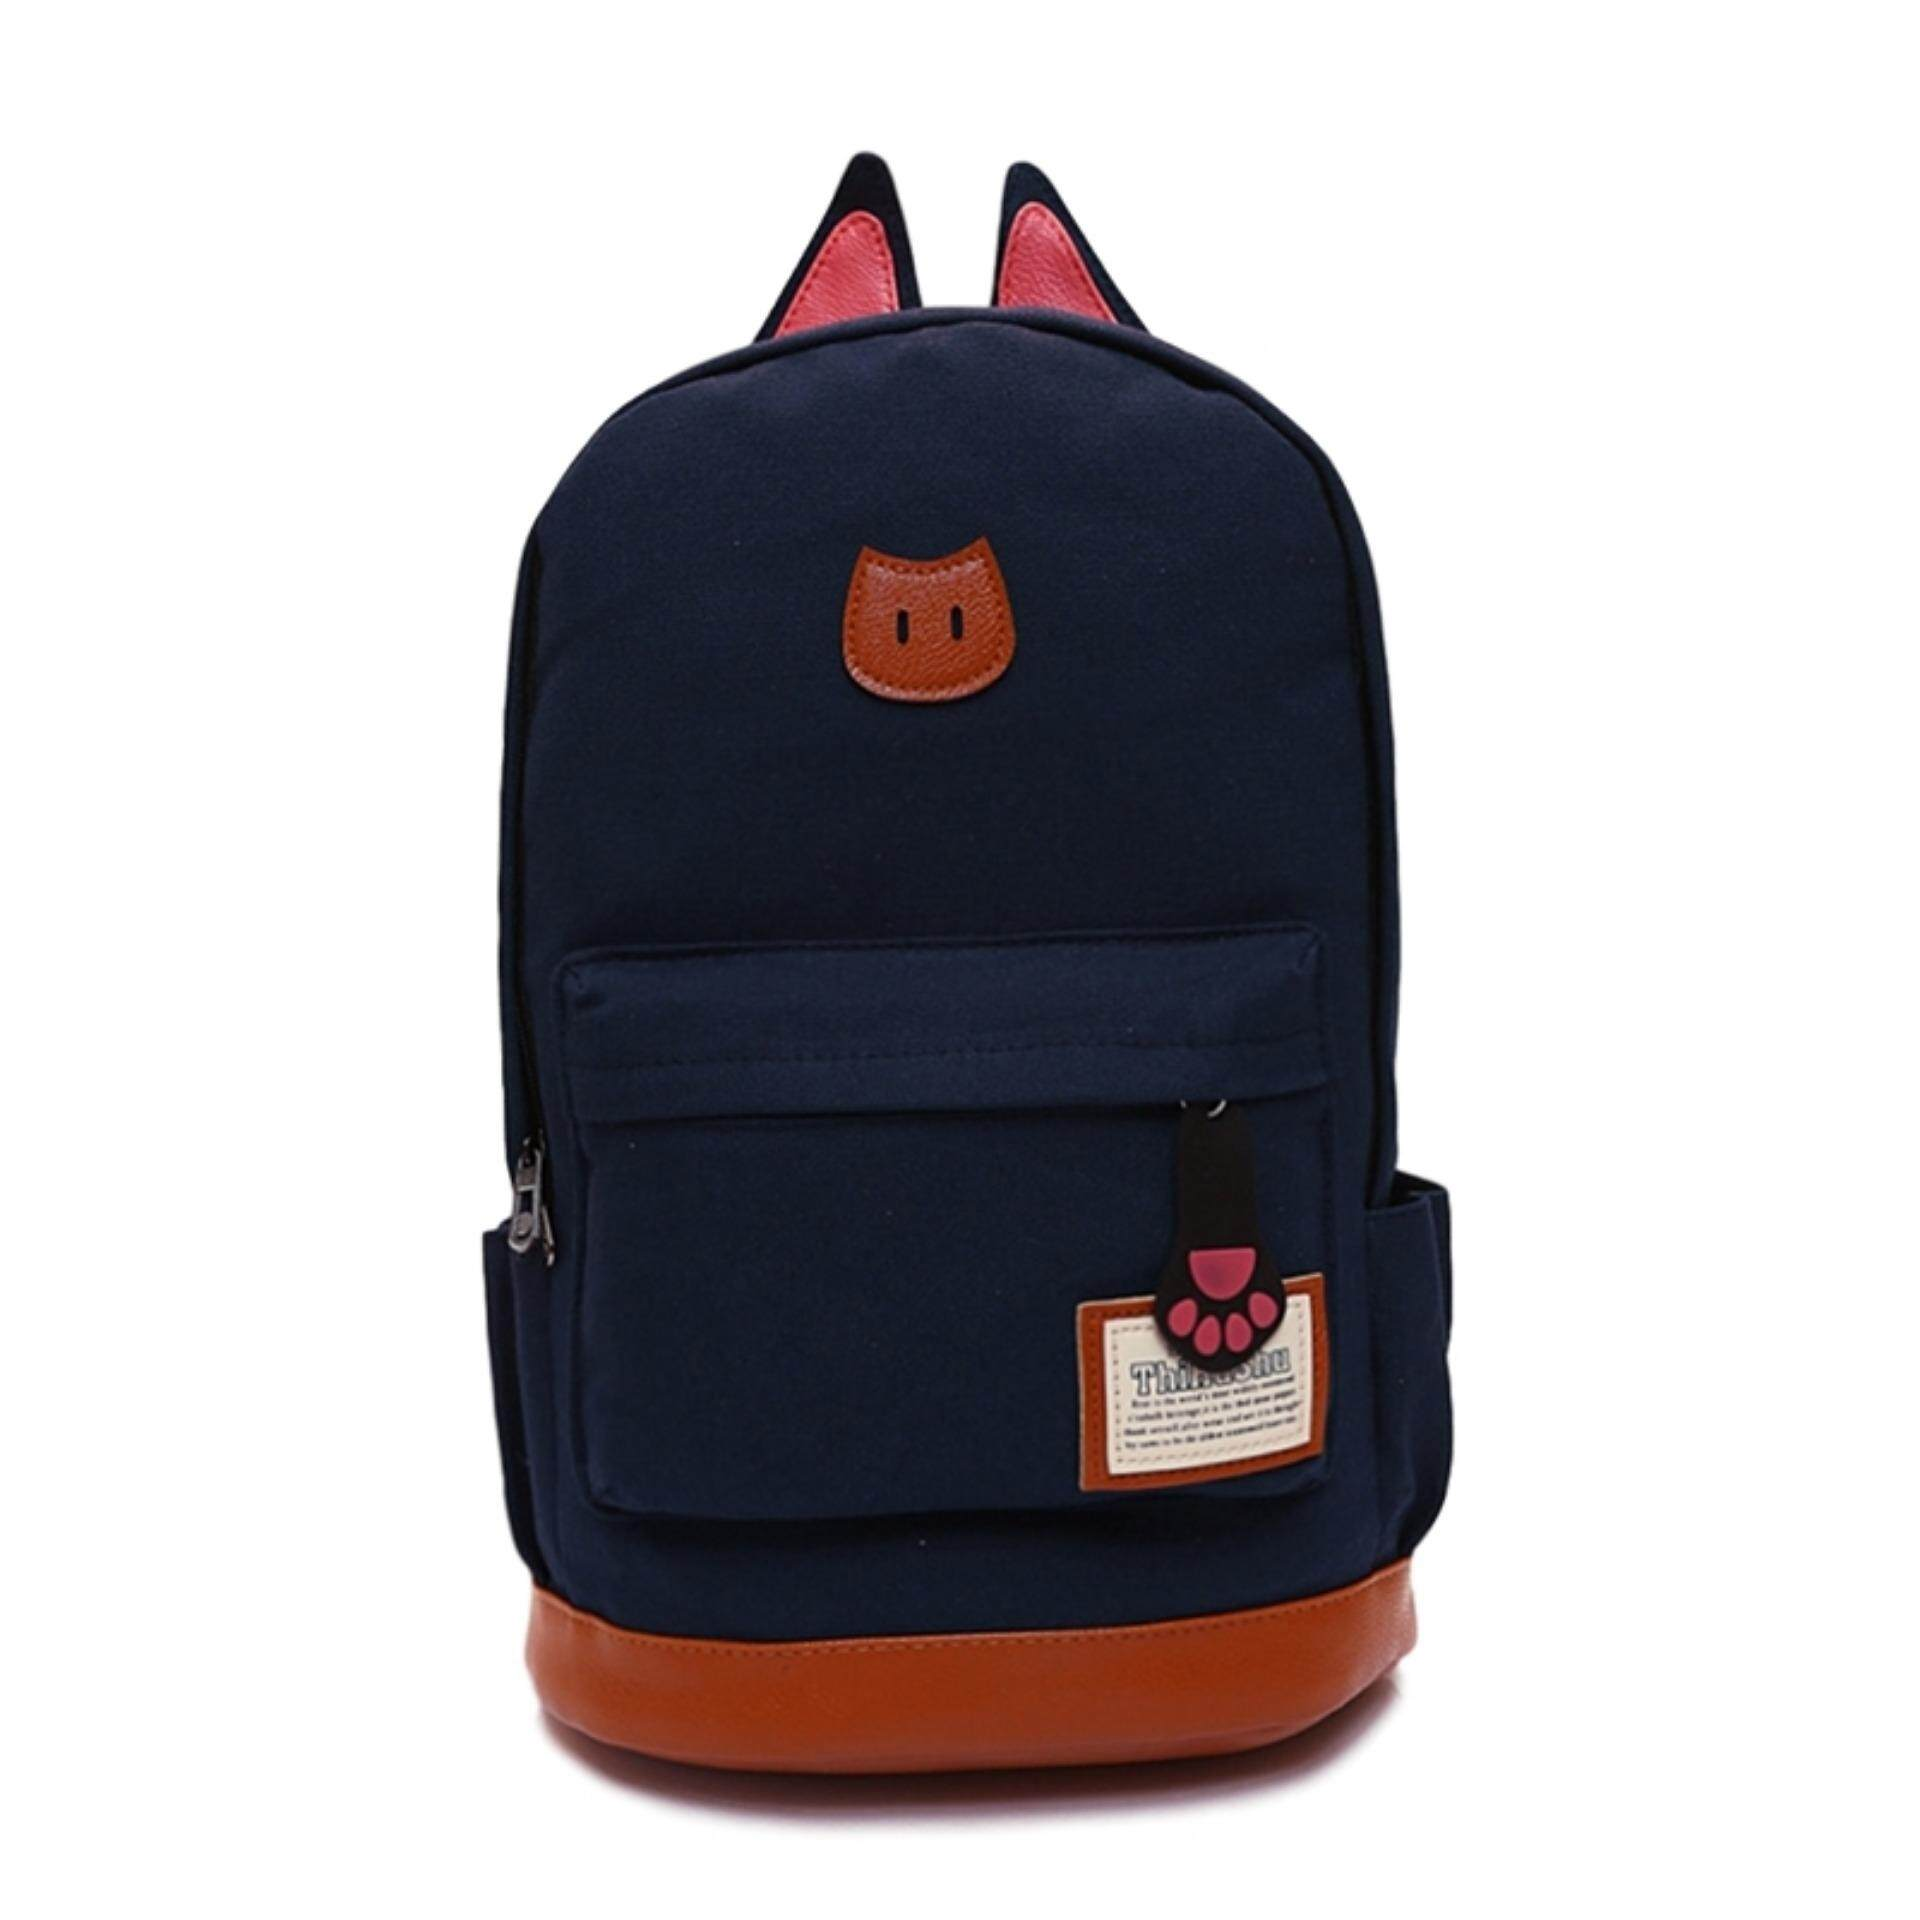 TEEMI Korean Kitten Cat Ear Canvas Backpack Casual Travel Laptop School Bag Leather Lash Tab - Dark Blue